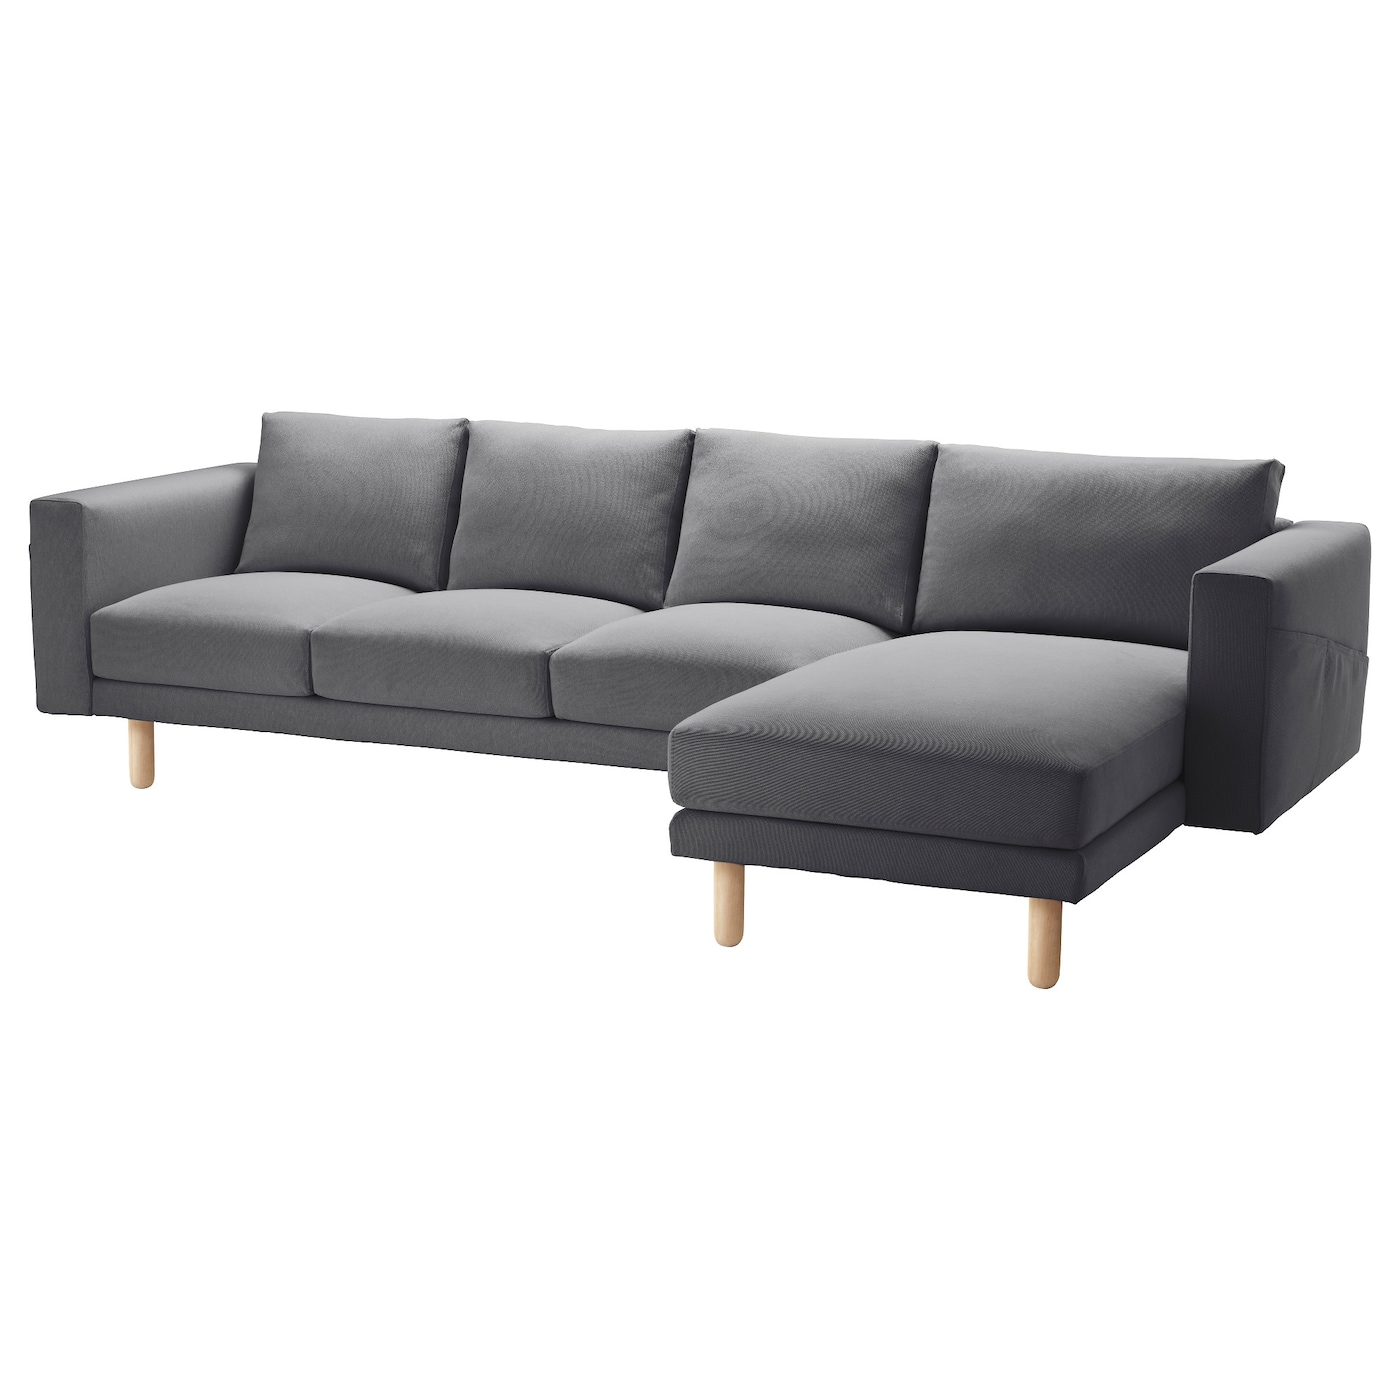 Norsborg cover 3 seat sofa w chaise longue finnsta dark for Chaise longue cover